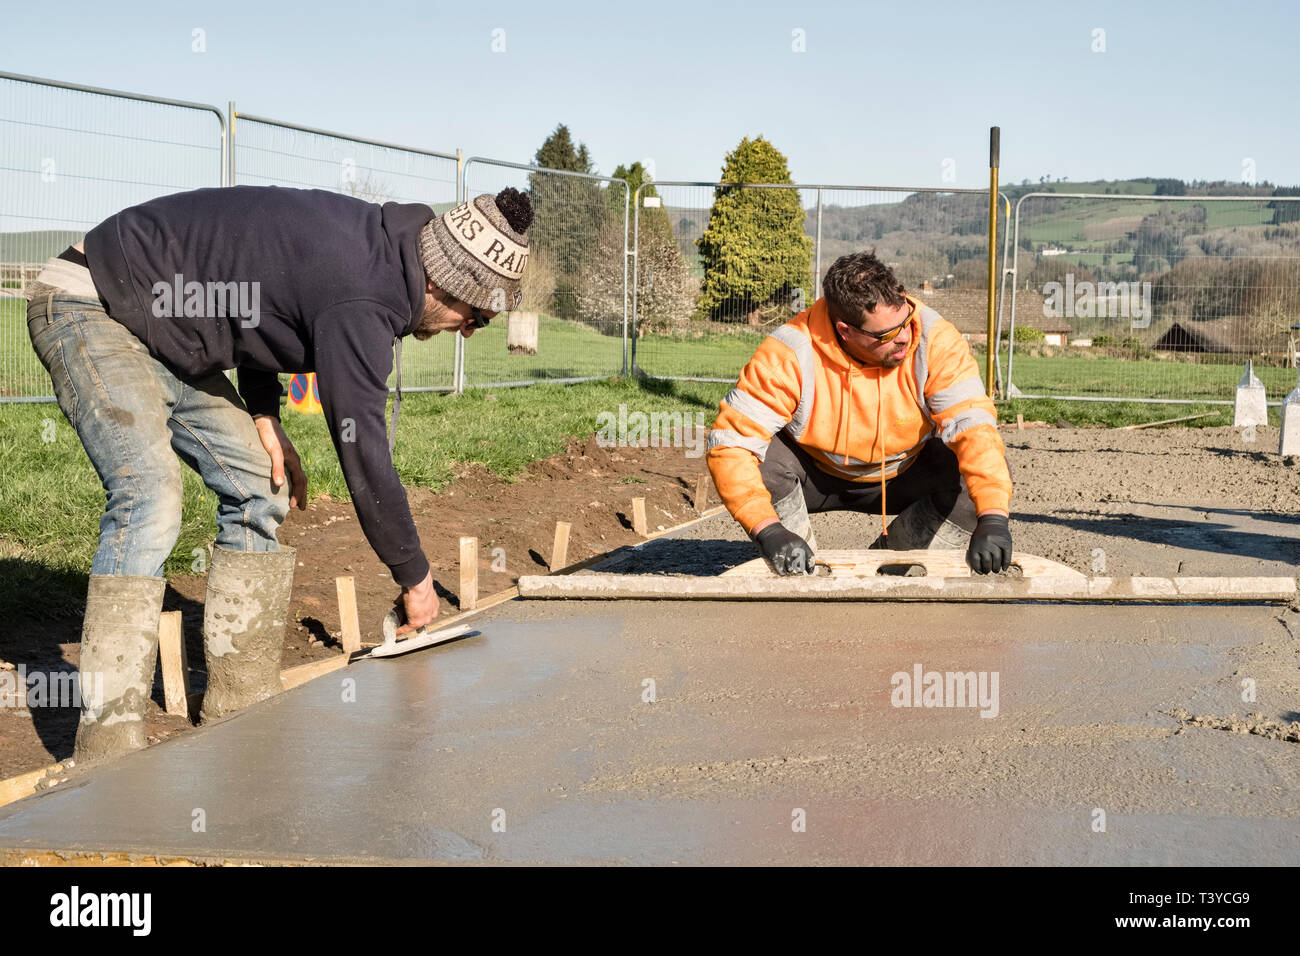 Presteigne, Powys, Wales, UK. Workmen using concrete floats to smooth the surface of a freshly laid concrete floor Stock Photo